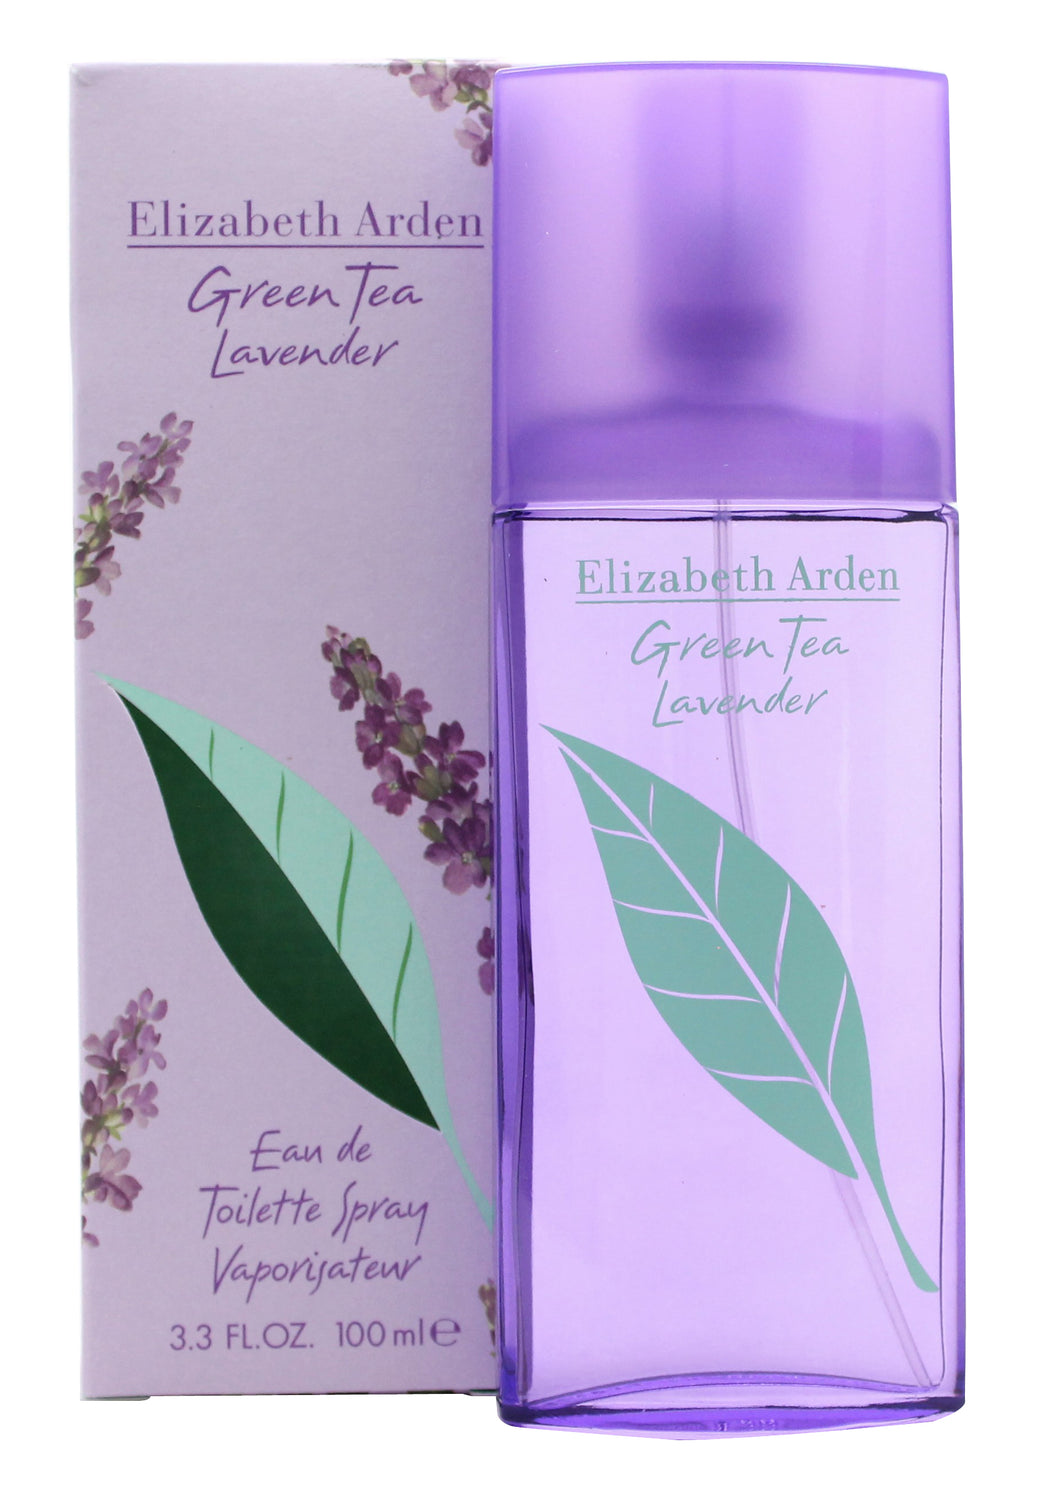 Elizabeth Arden Green Tea Lavender Eau de Toilette 100ml Spray